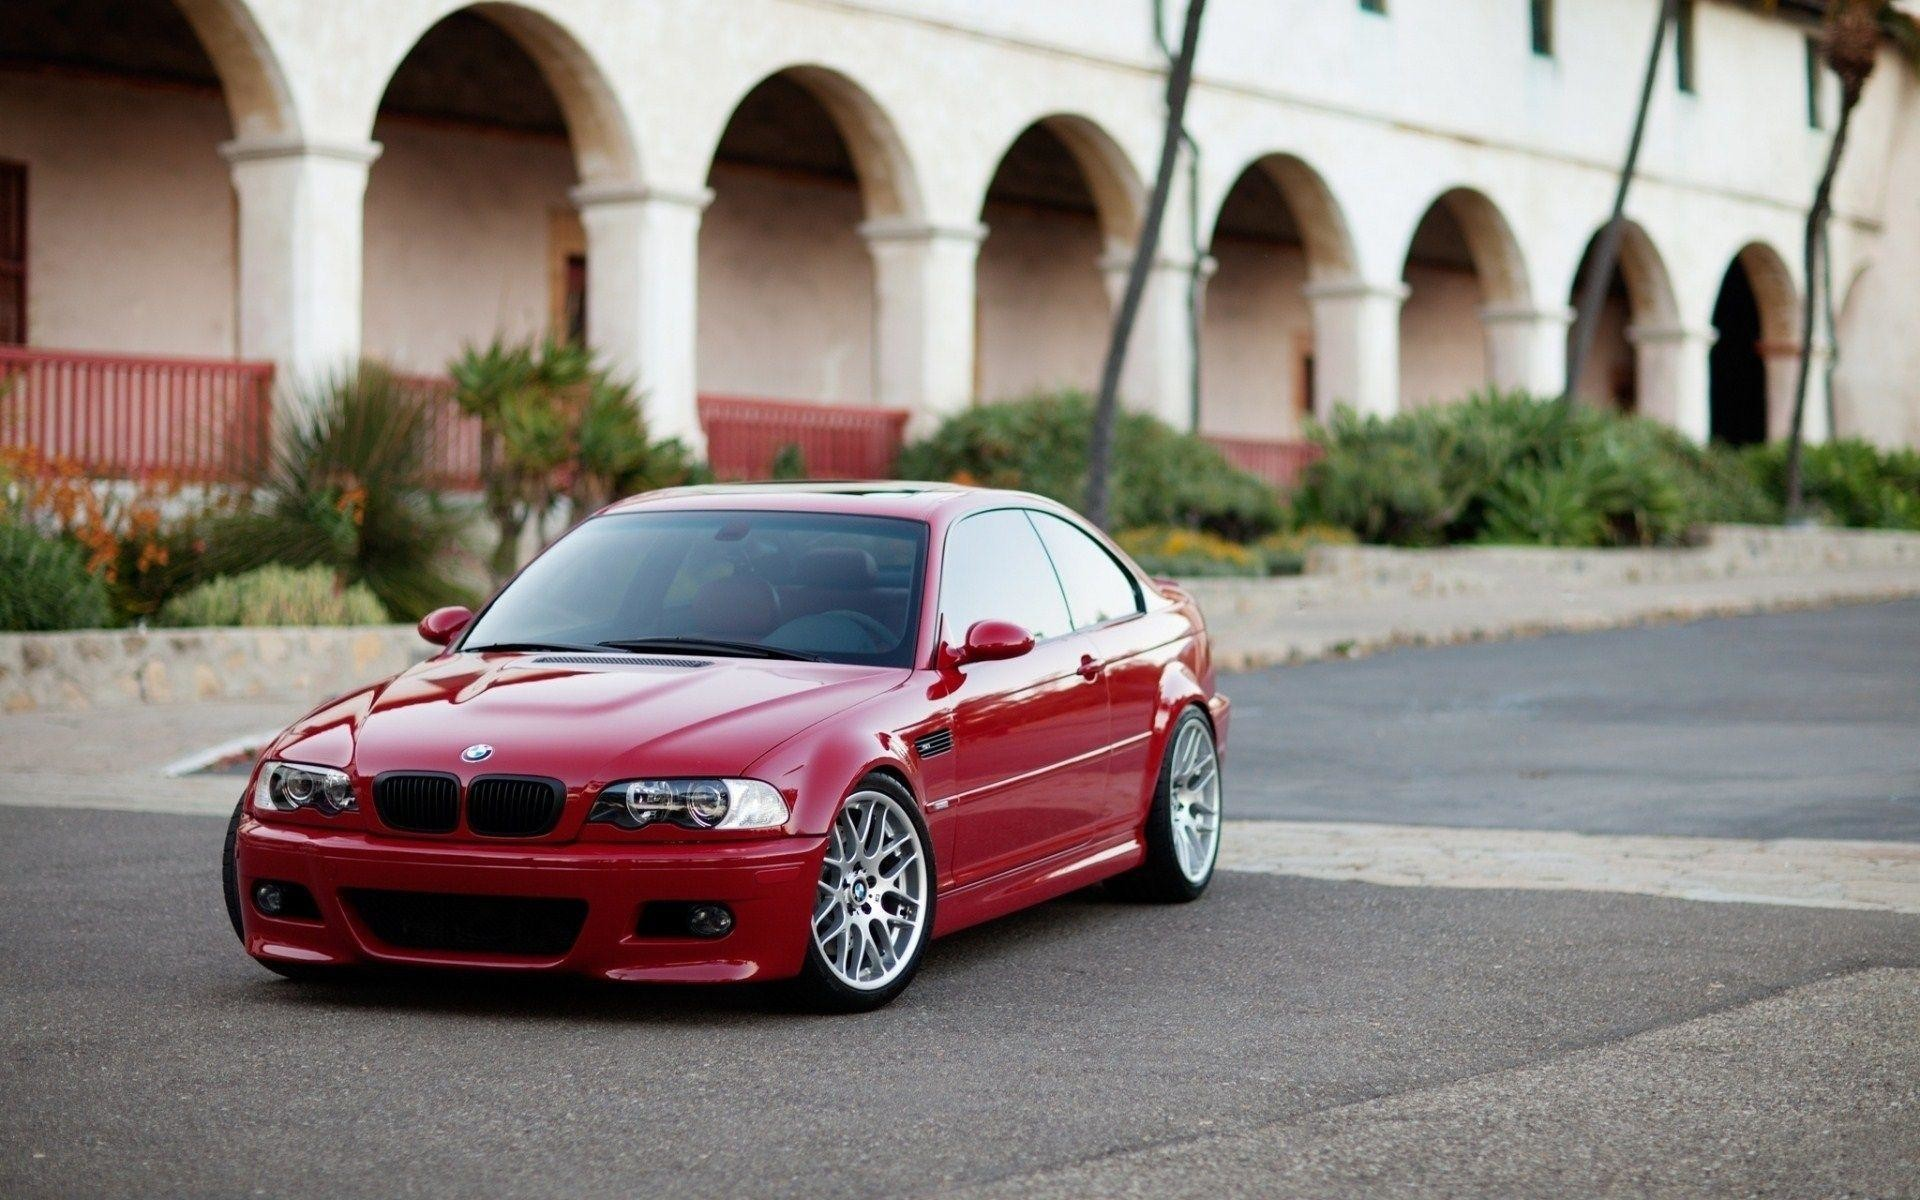 1920x1200 Wallpapers For > Bmw E46 M3 Iphone Wallpaper